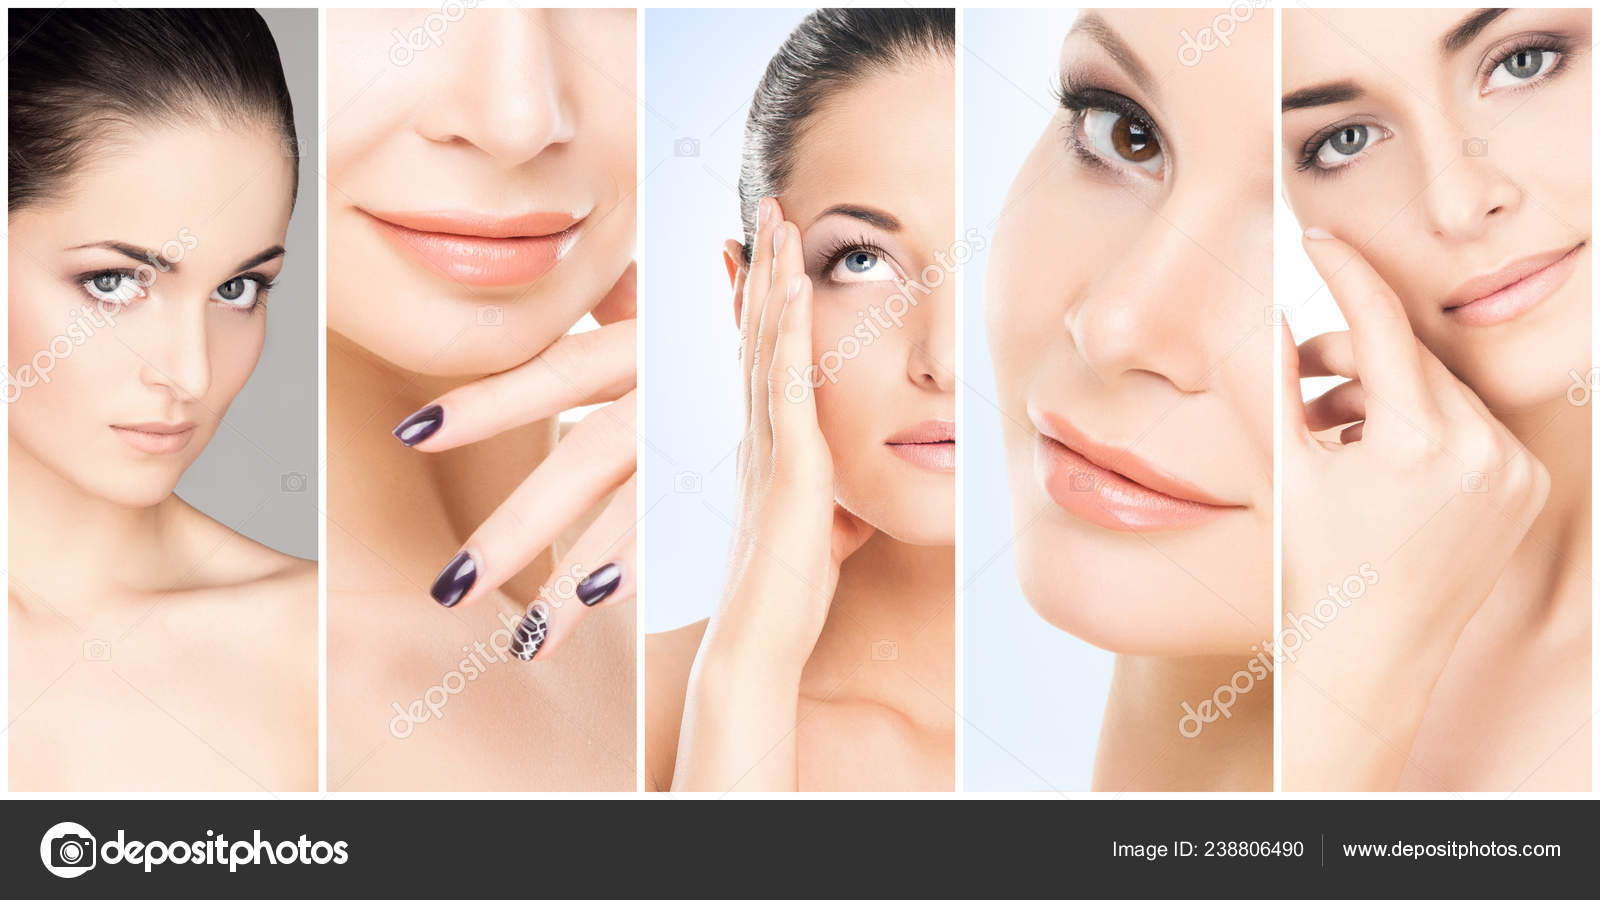 Beautiful Face Of Young And Healthy Girl In Collage Collection Plastic Surgery Skin Care Cosmetics And Face Lifting Concept Stock Photo C Shmeljov 238806490